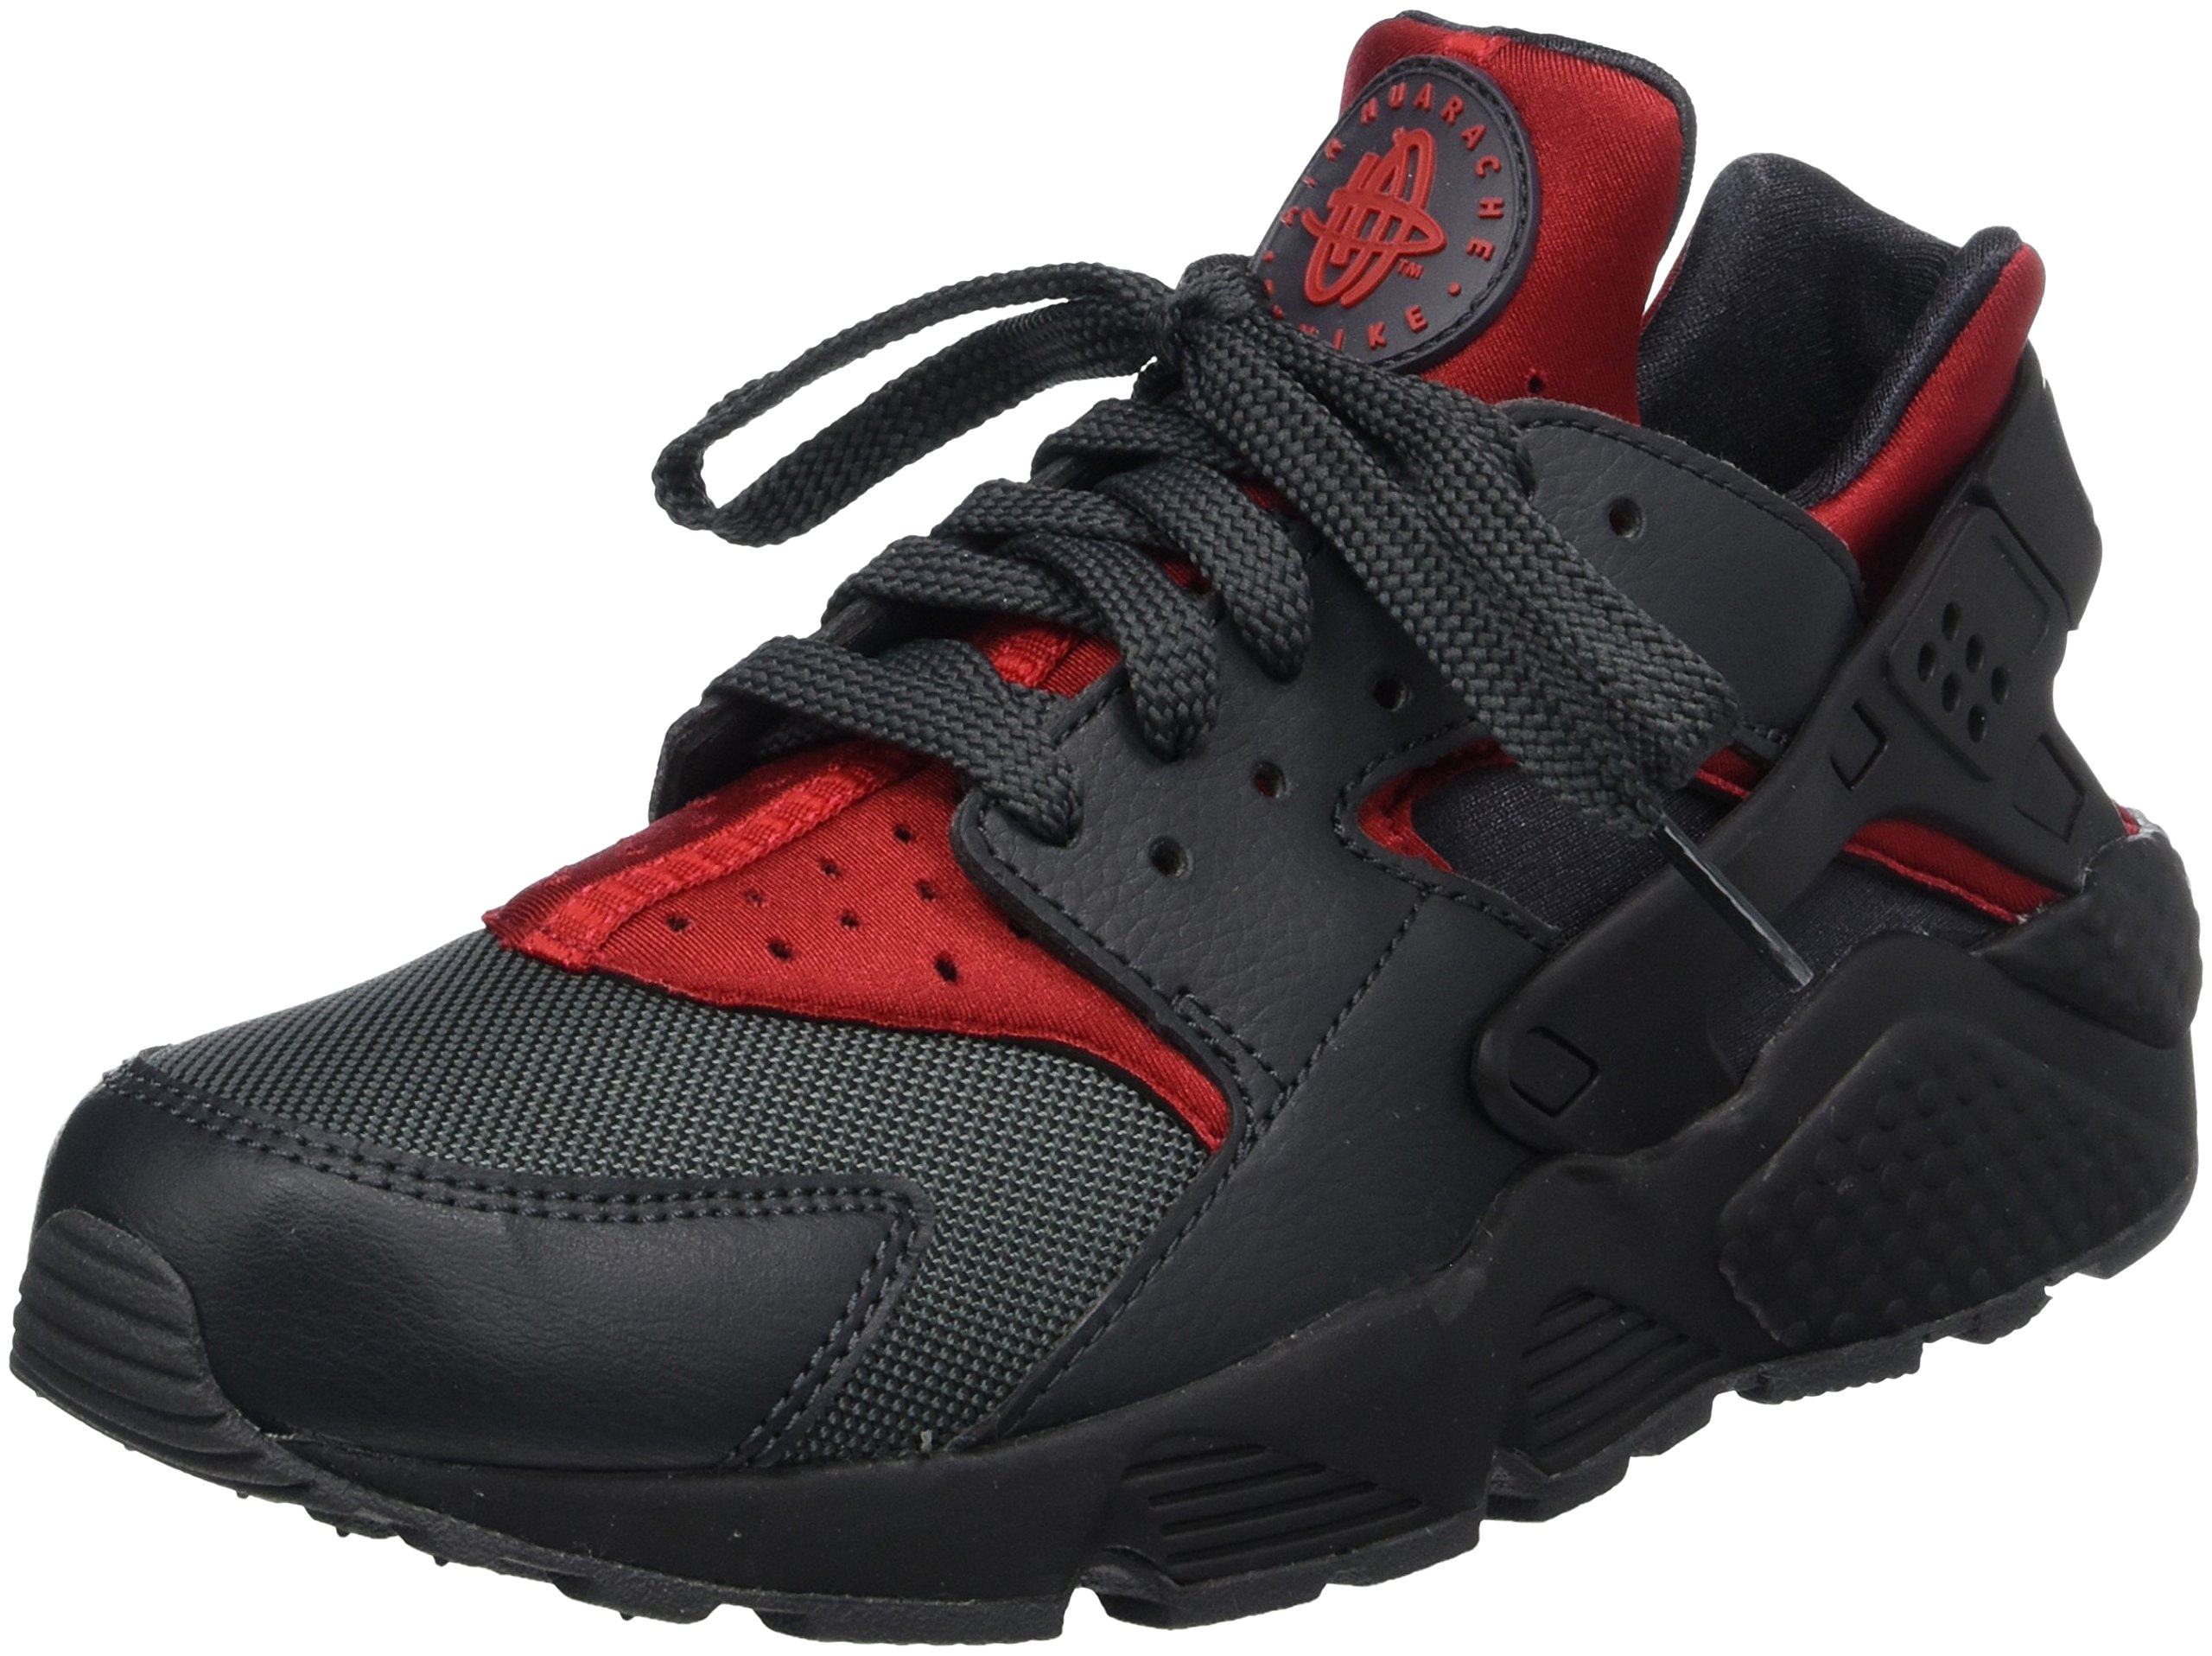 quality design ae4ac d5be1 Galleon - NIKE Air Huarache Mens Shoes Gym Red Gym Red Black 318429-607 (13  D(M) US)